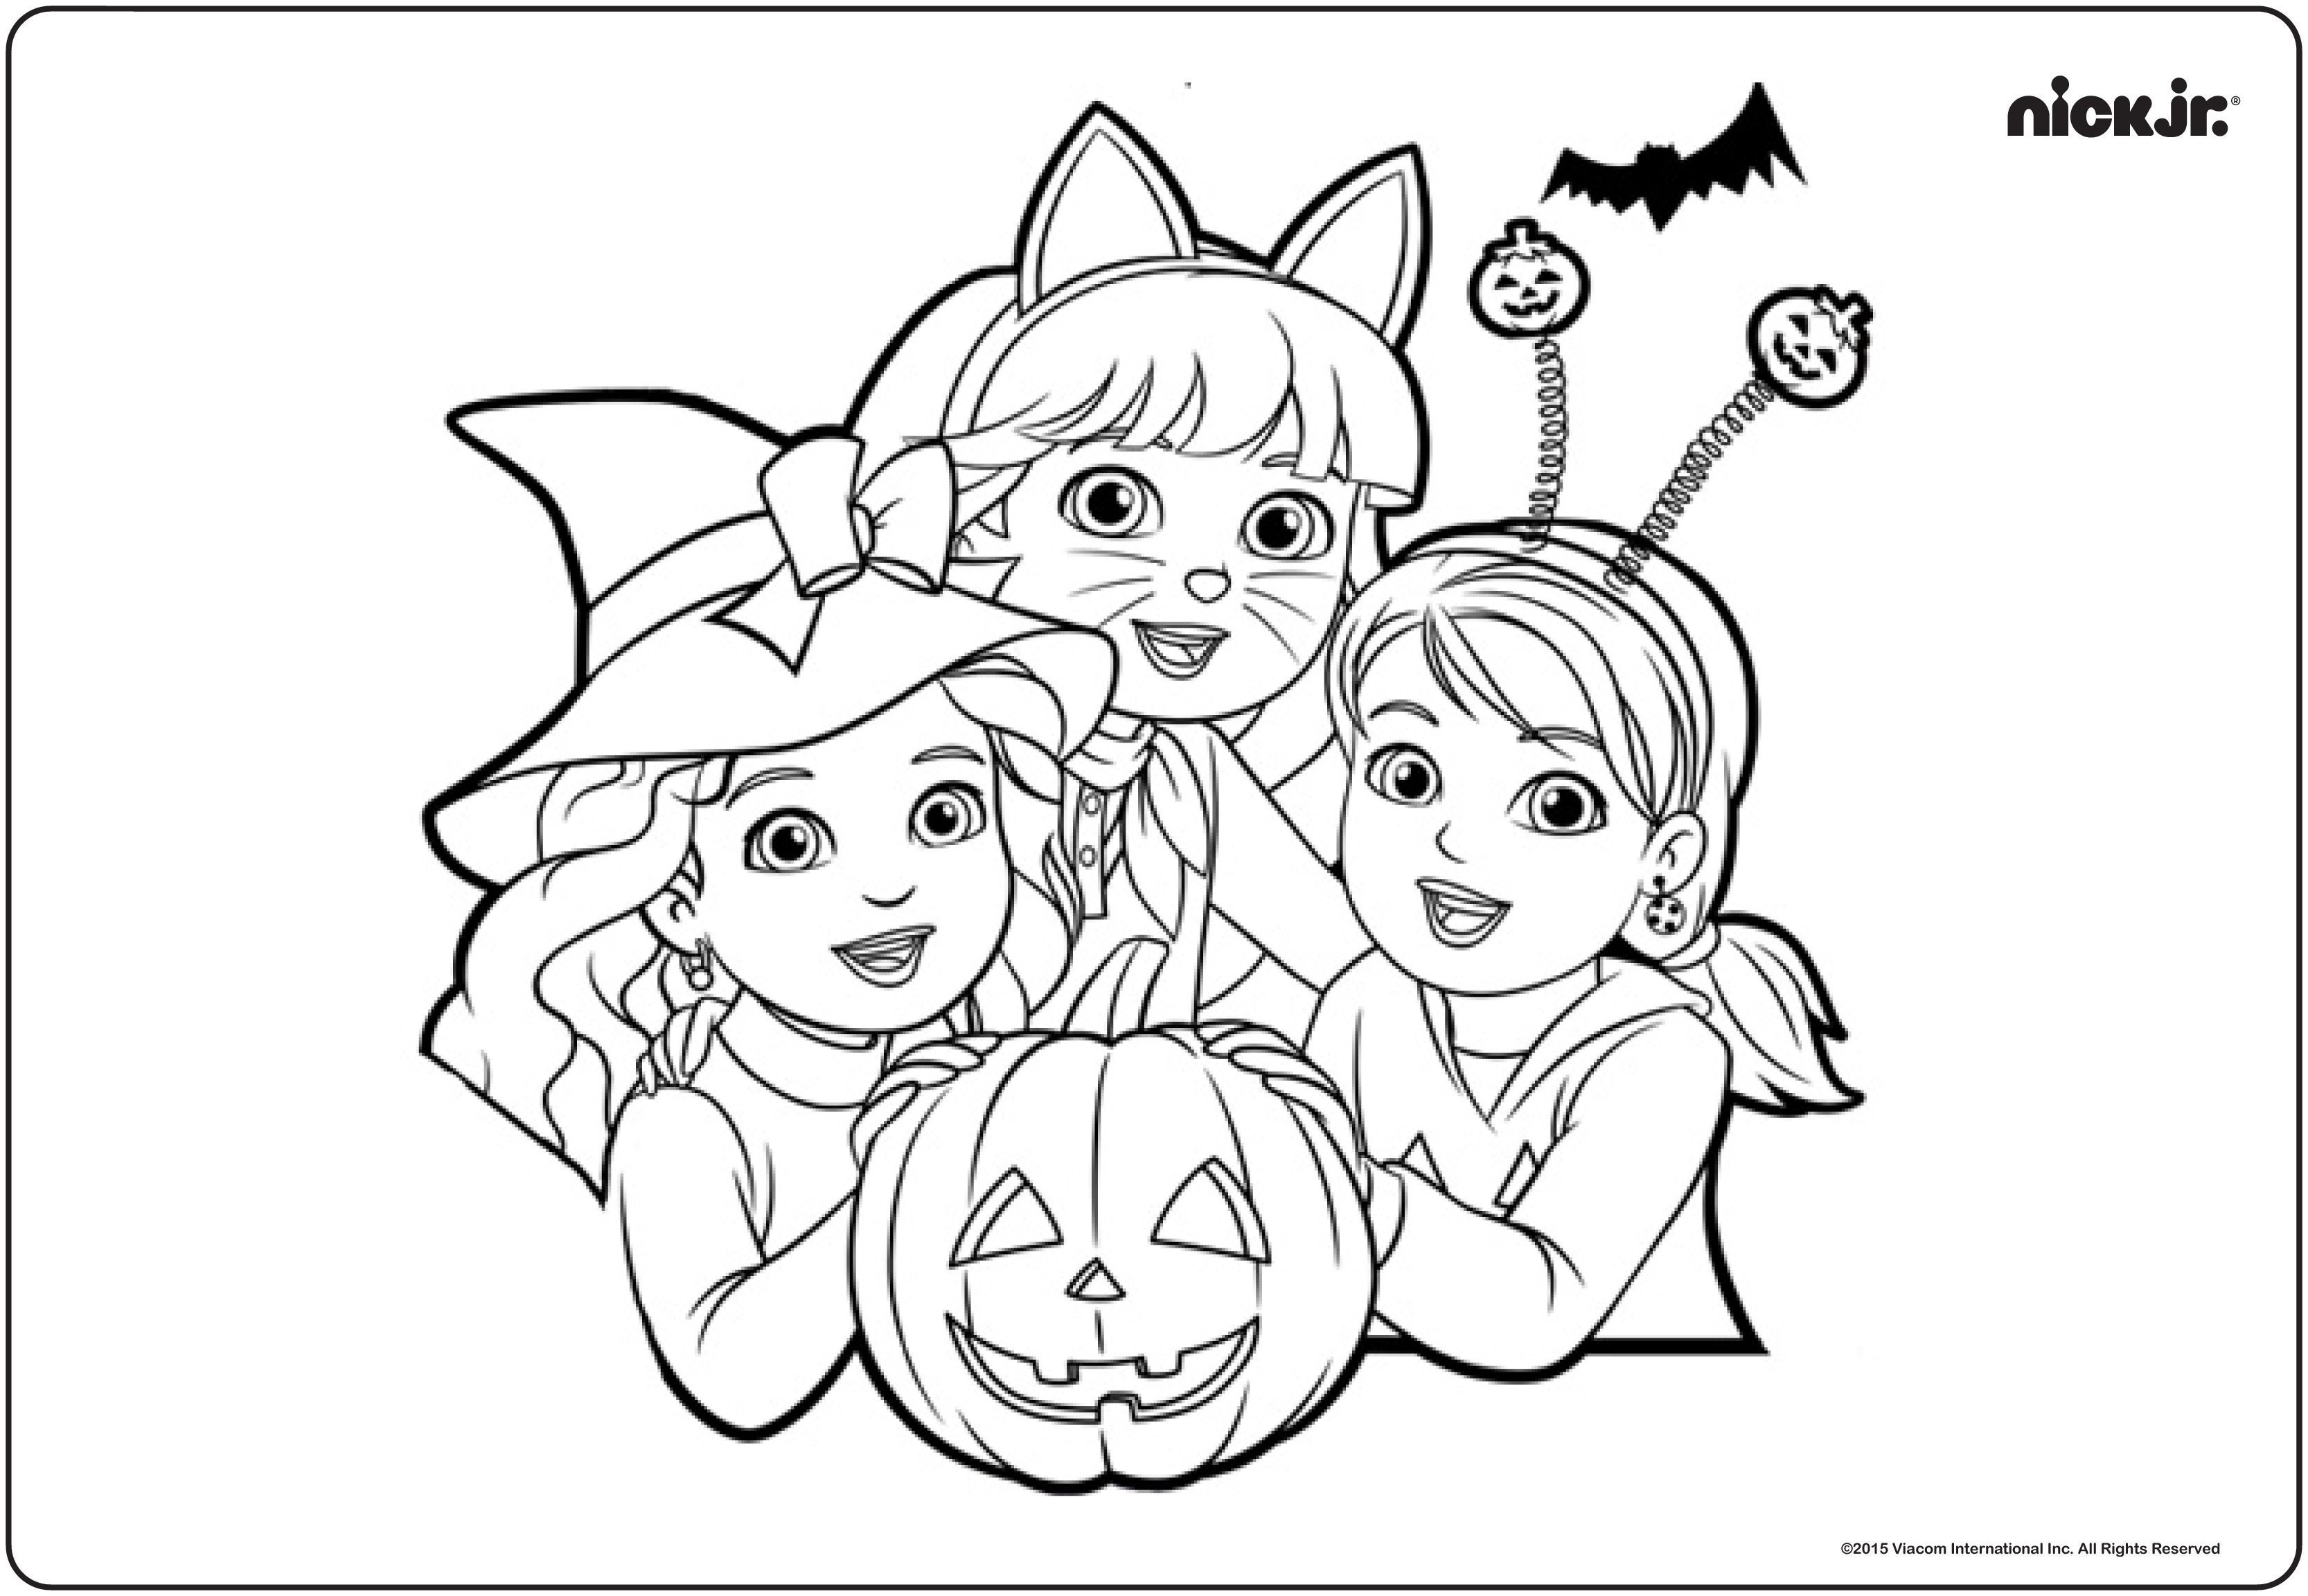 Dora and Friends Coloring Pages  Download 4h - Save it to your computer